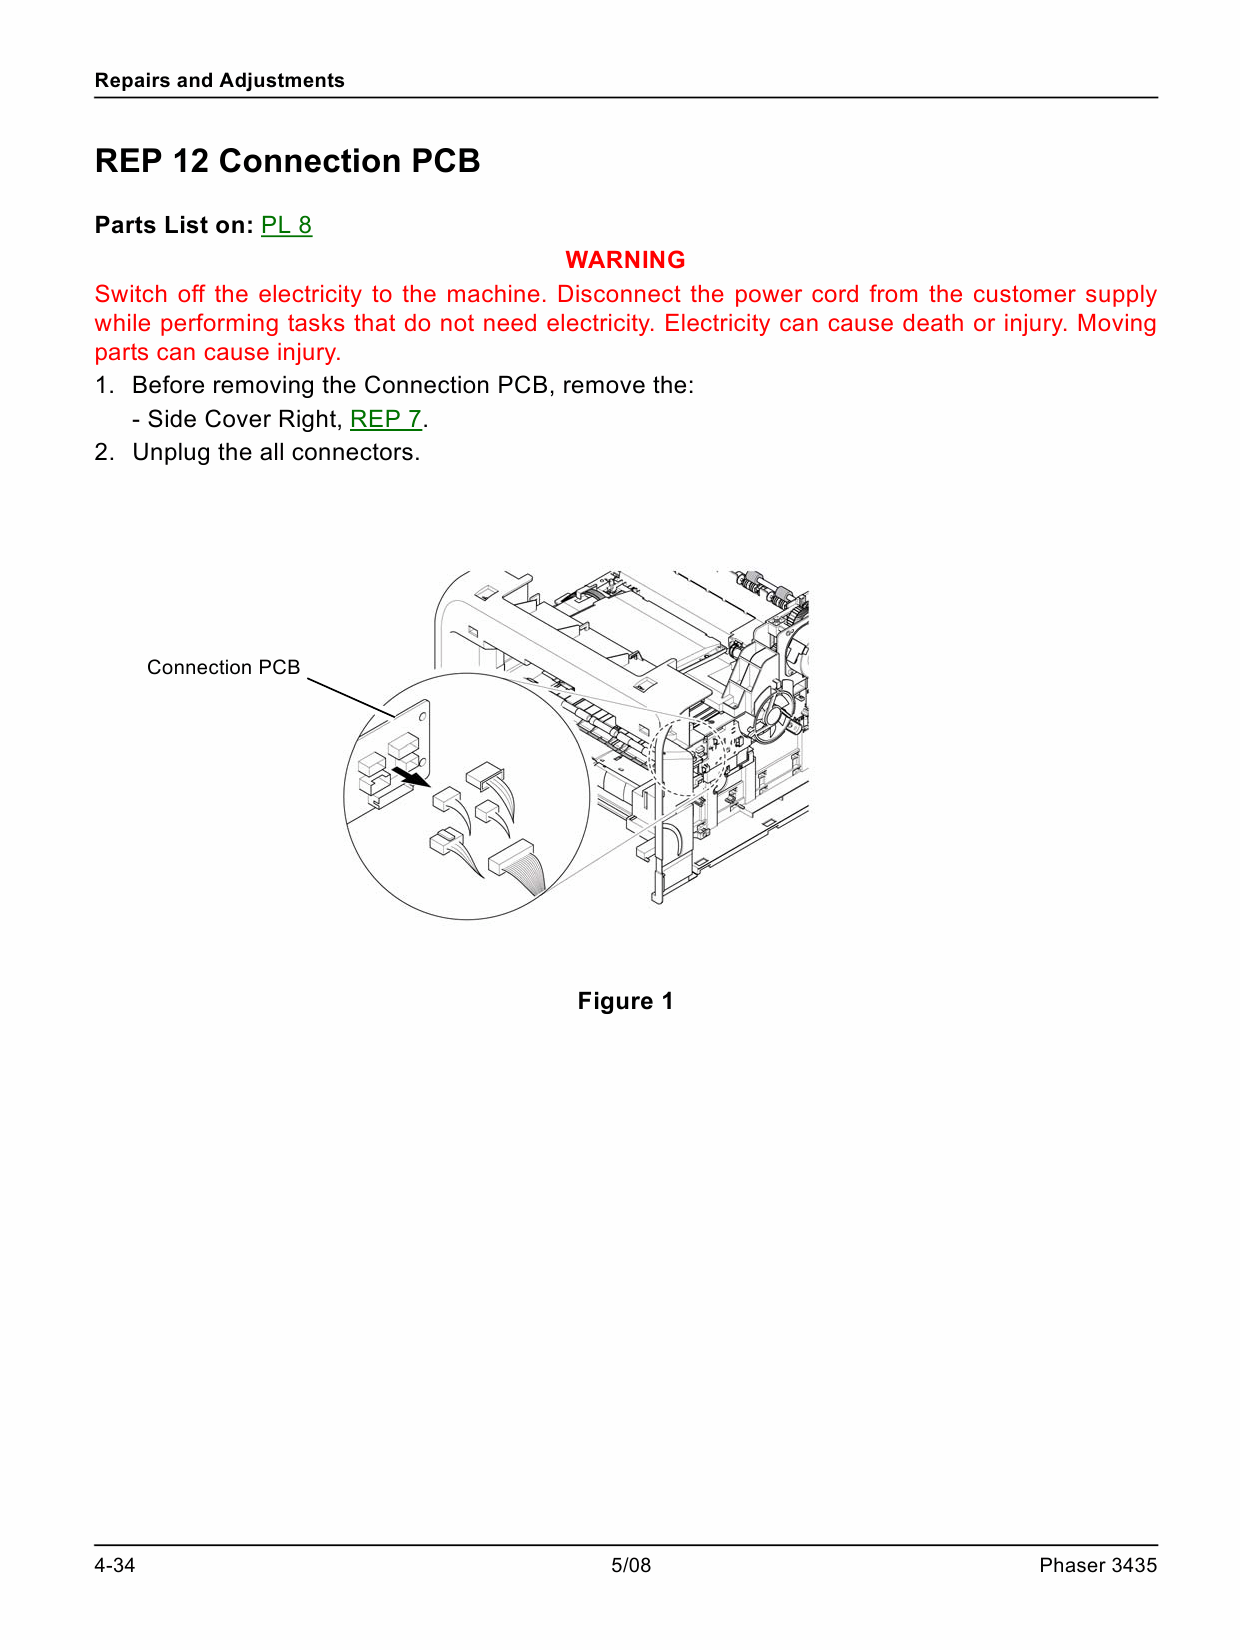 Xerox Phaser 3435 Parts List and Service Manual-4